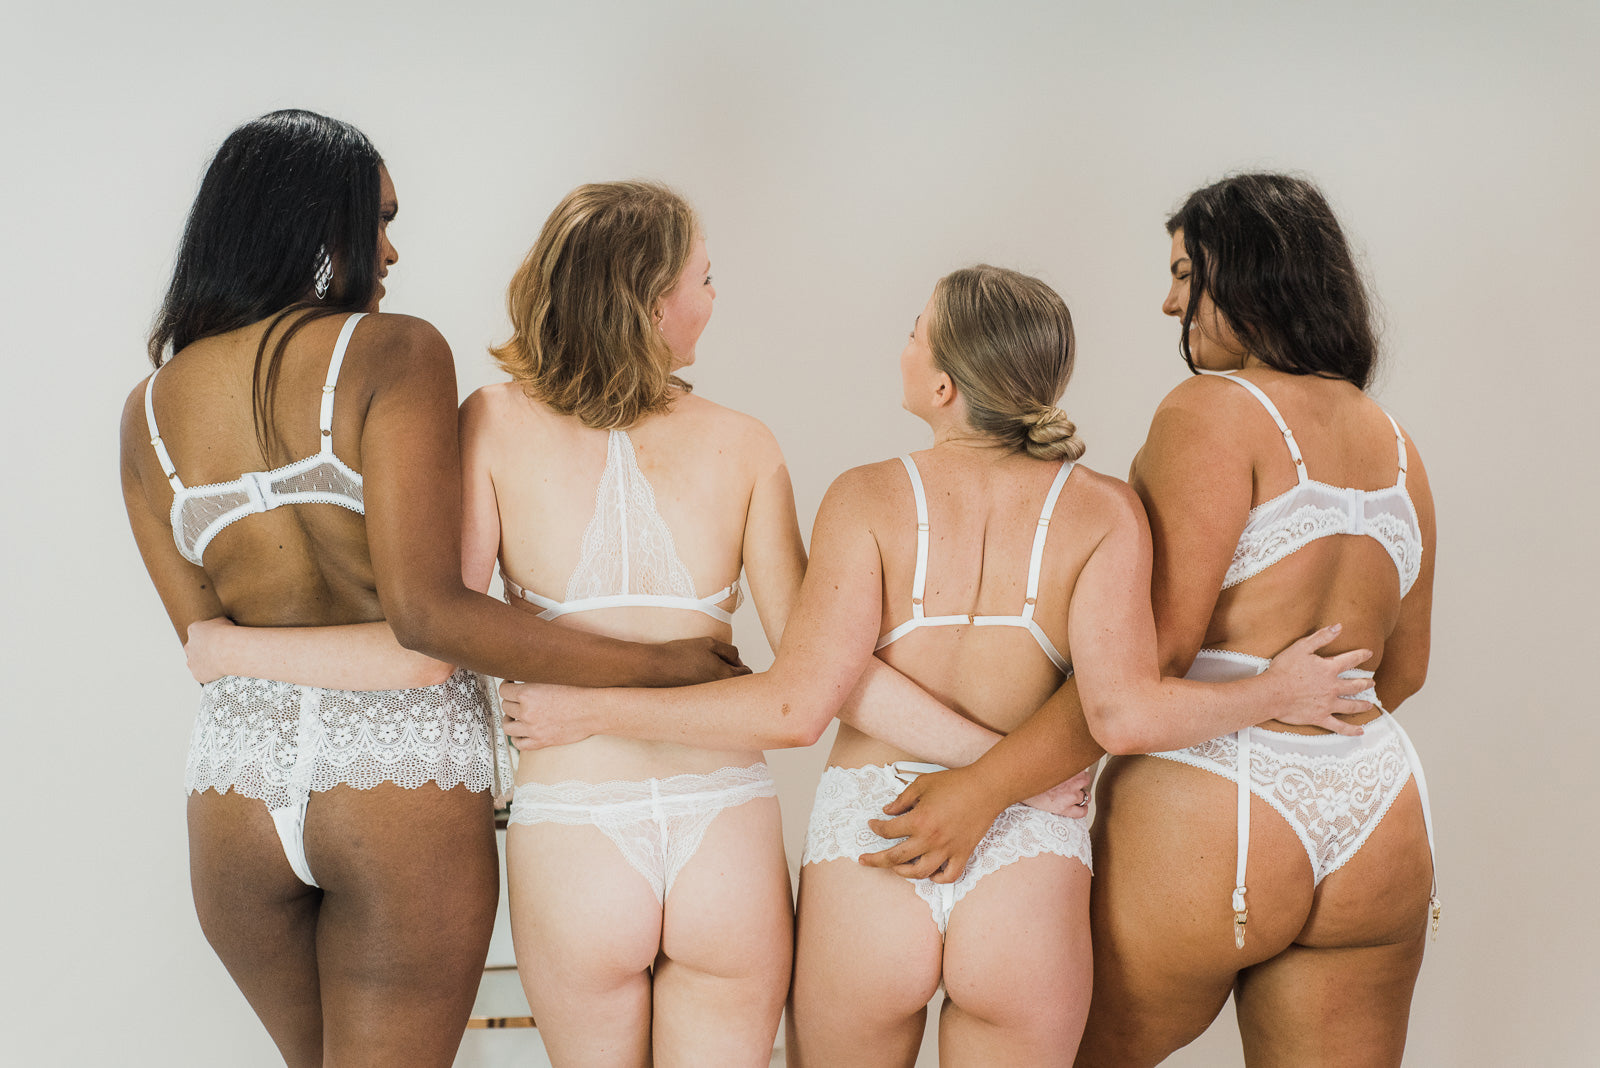 lingerie for all bodies body diversity by lazy girl lingerie